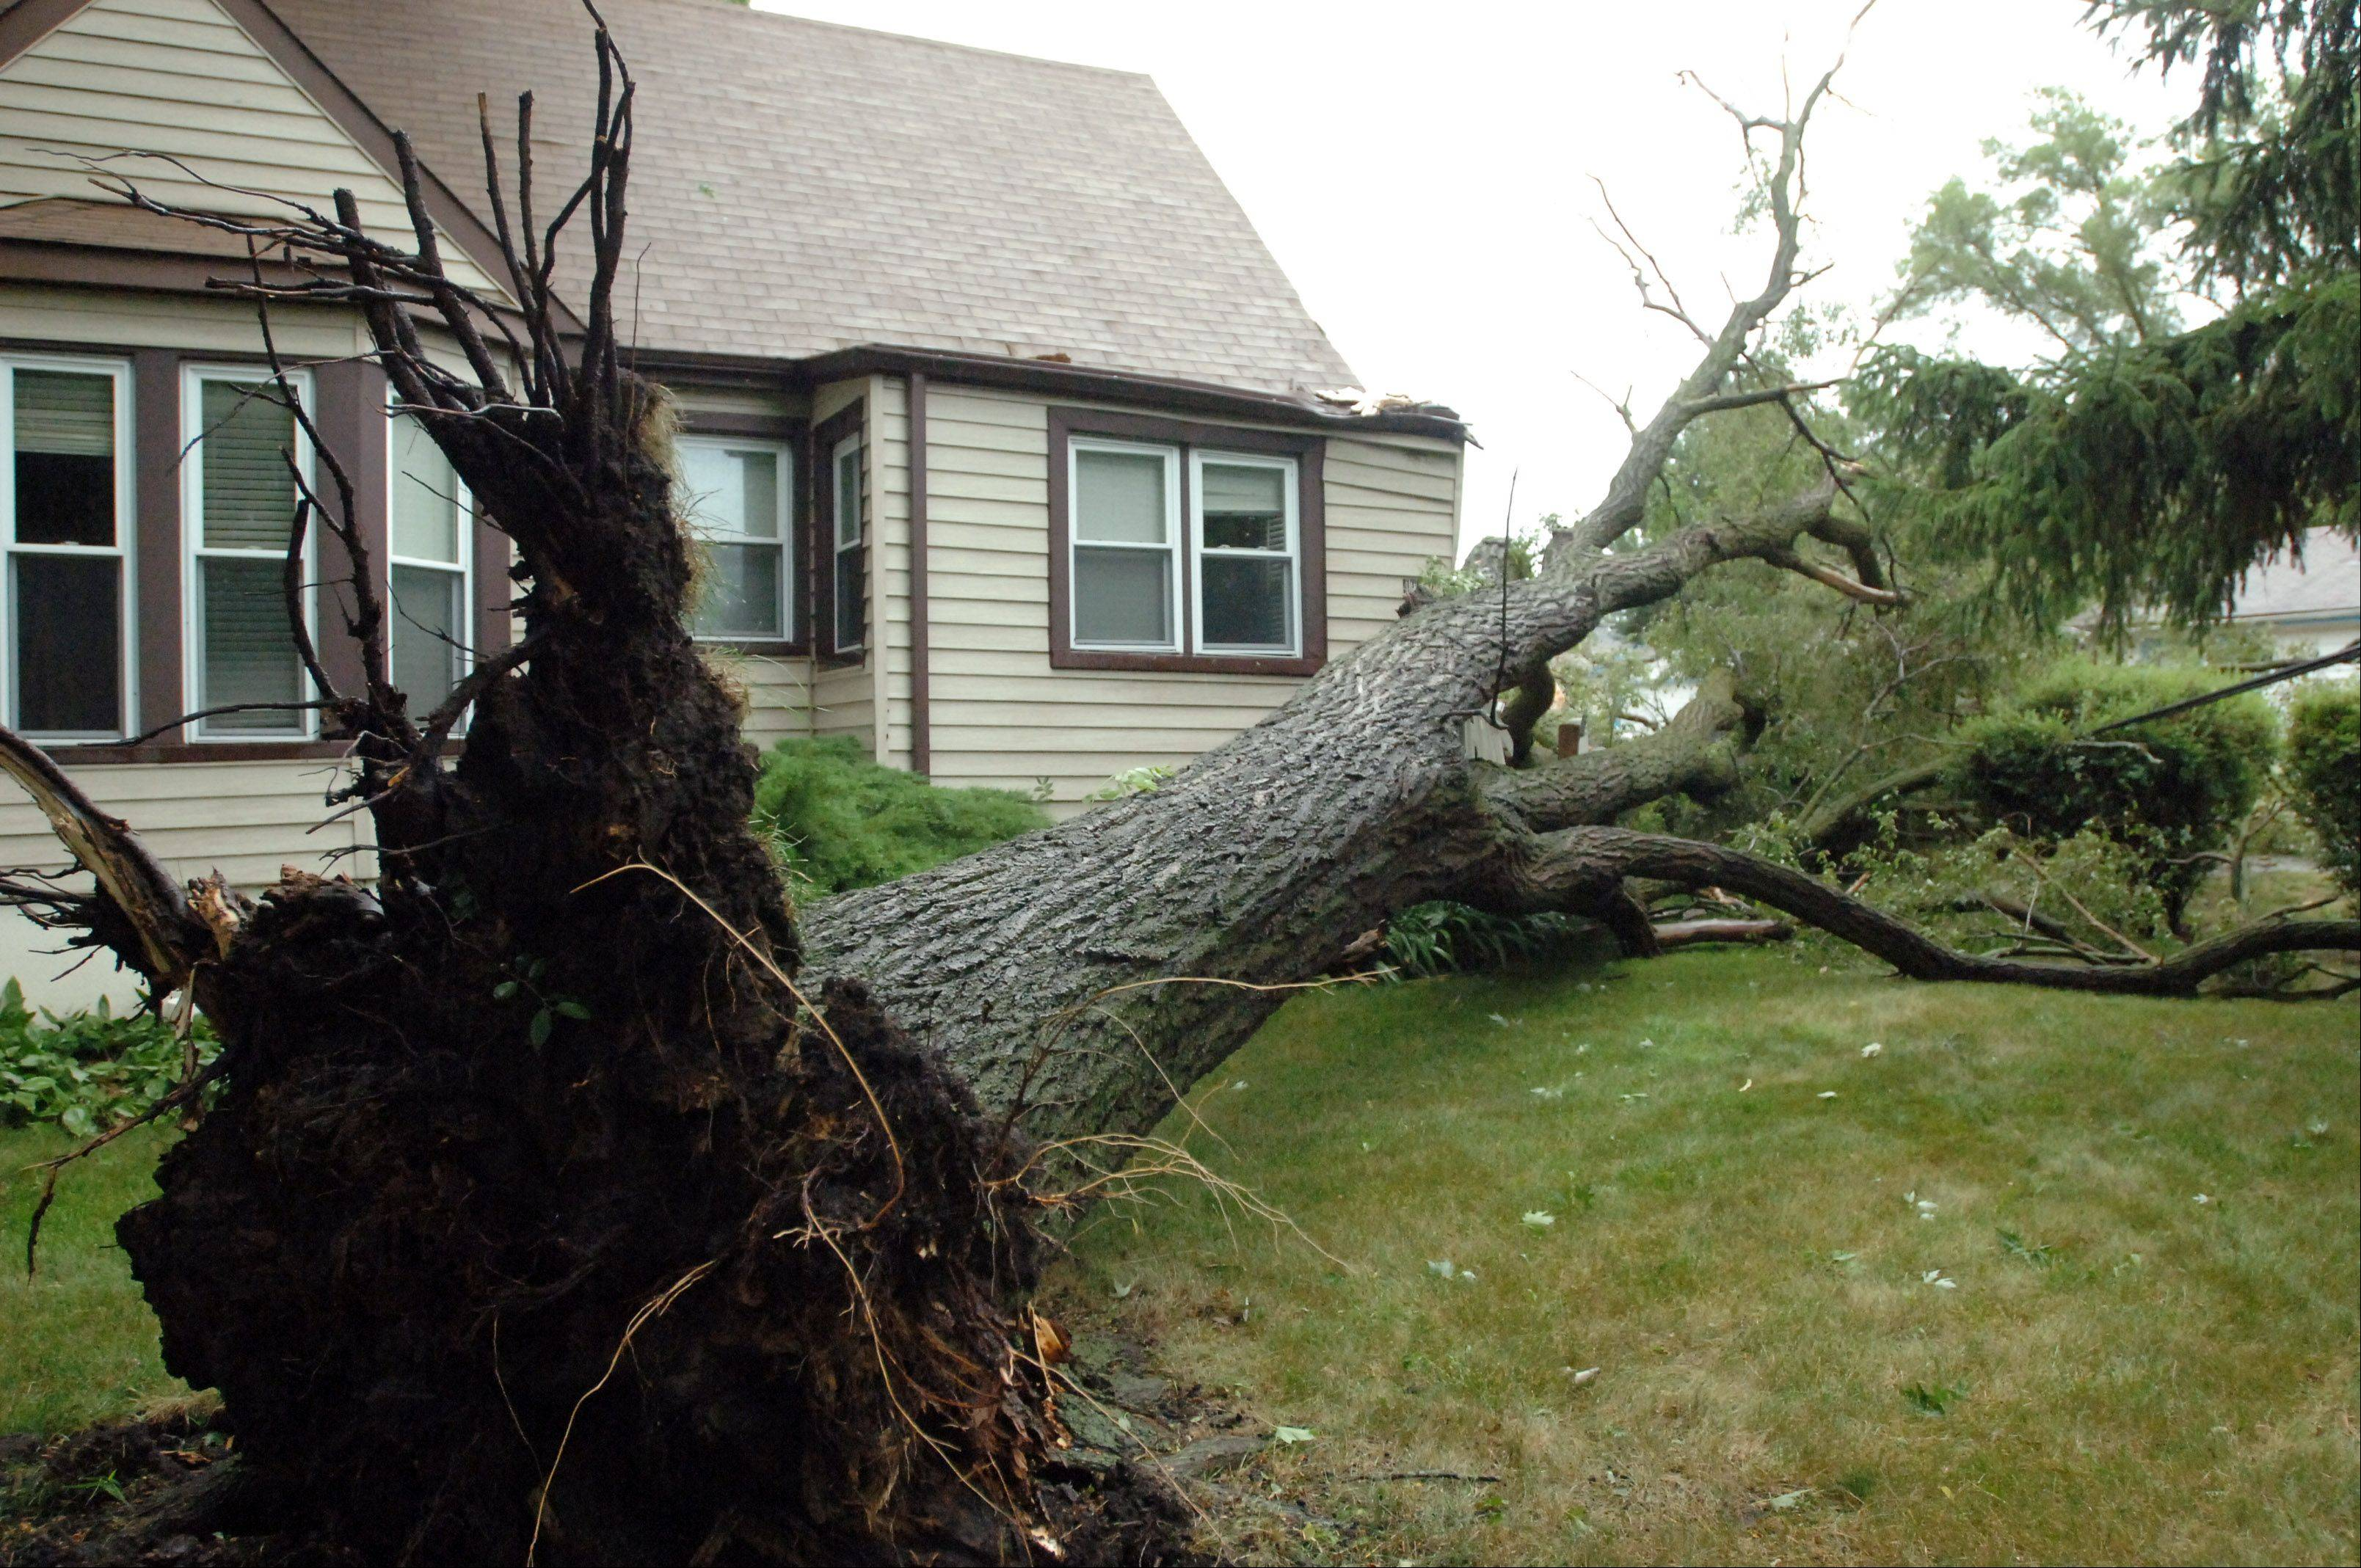 An uprooted tree hit the corner of Richard and Linda Whitmore's home on Clifton Road in Round Lake Park following the July 11 storm.